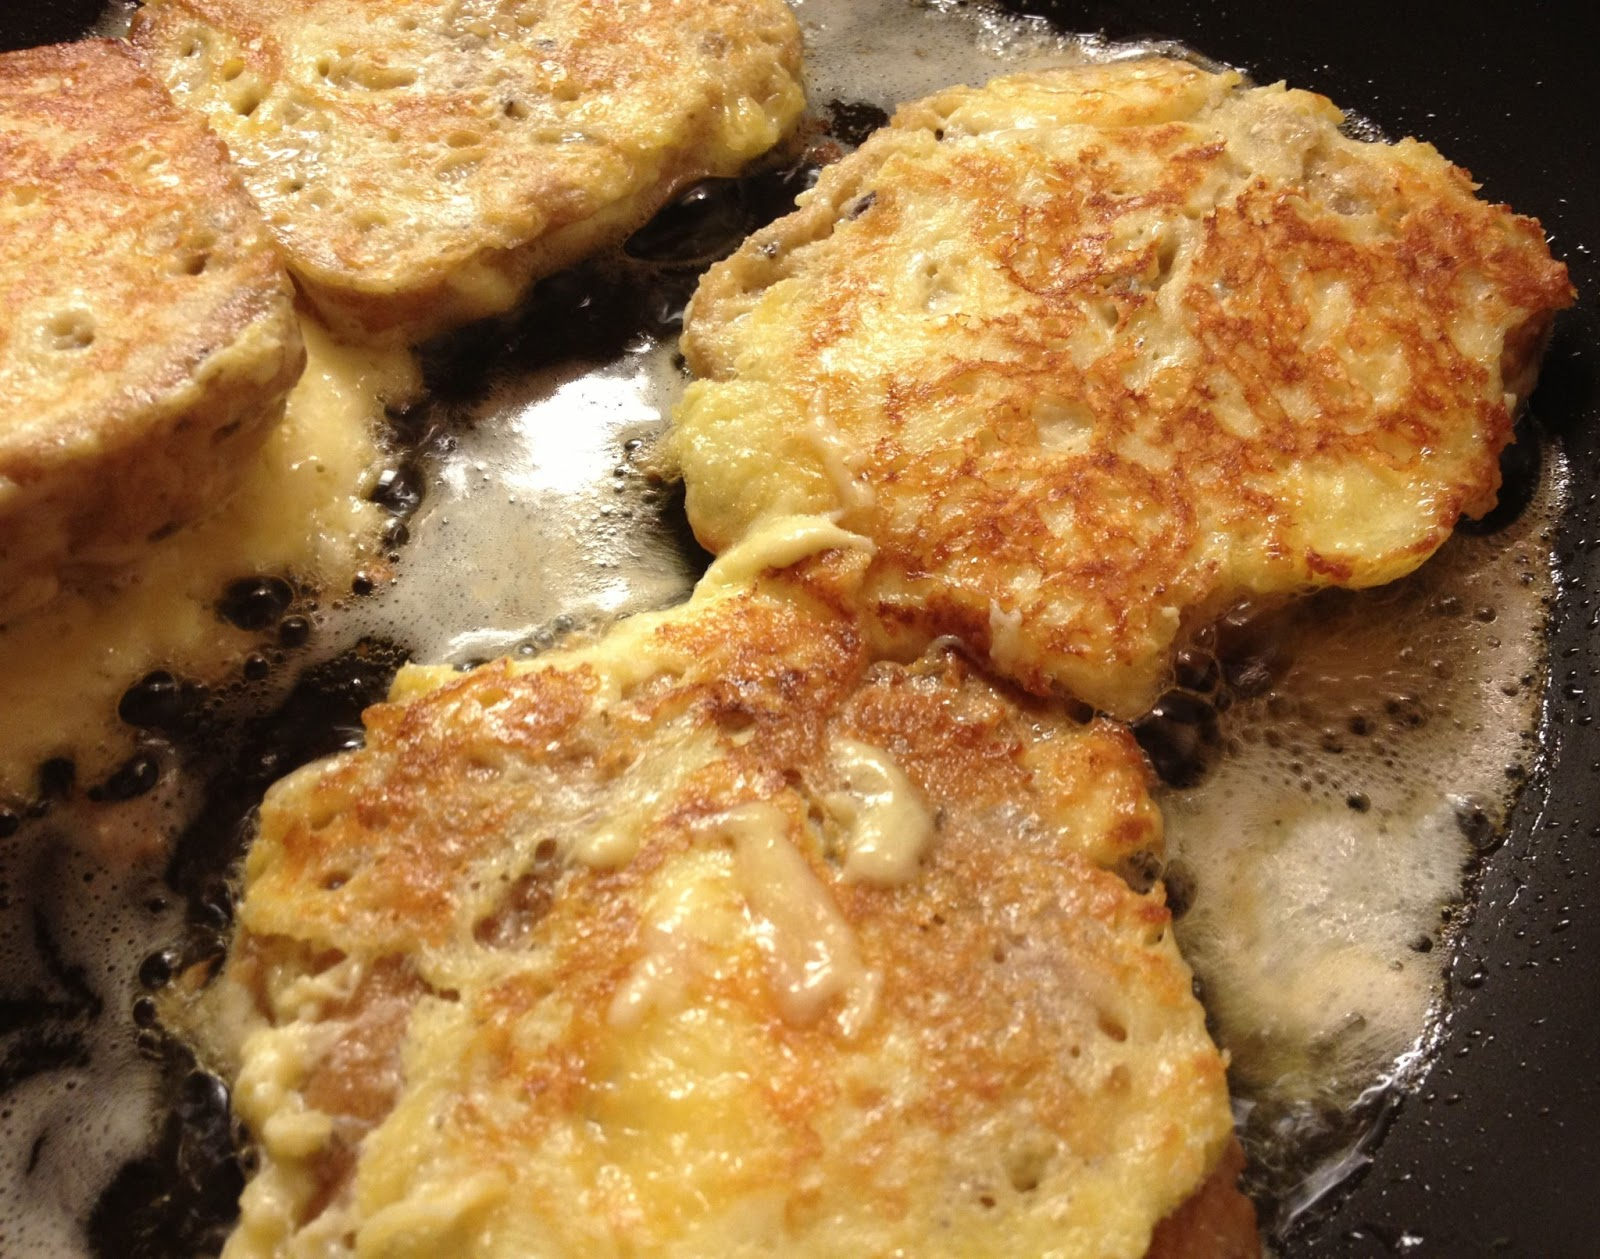 Gluten Free French Toast Frying In Butter